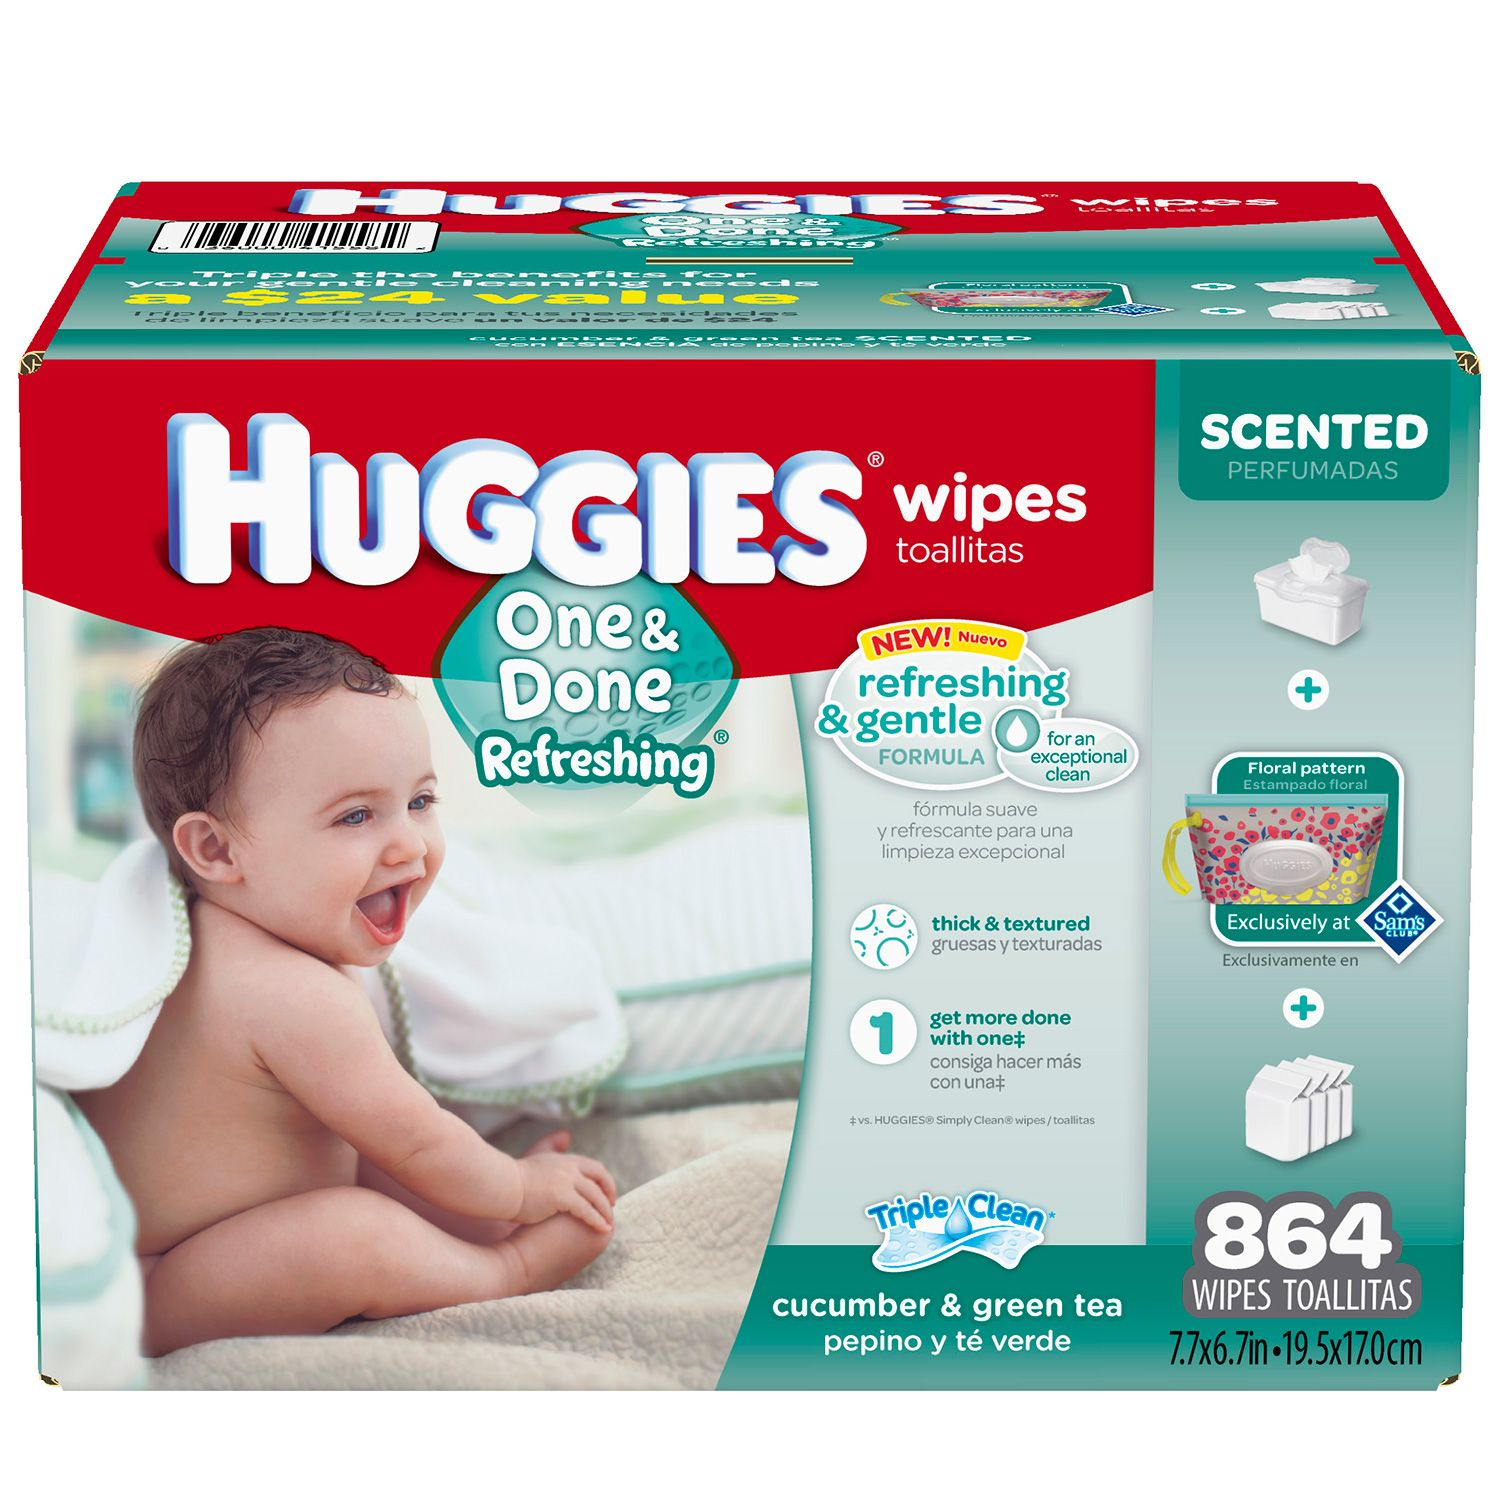 Find great deals on eBay for huggies wipes box. Shop with confidence.